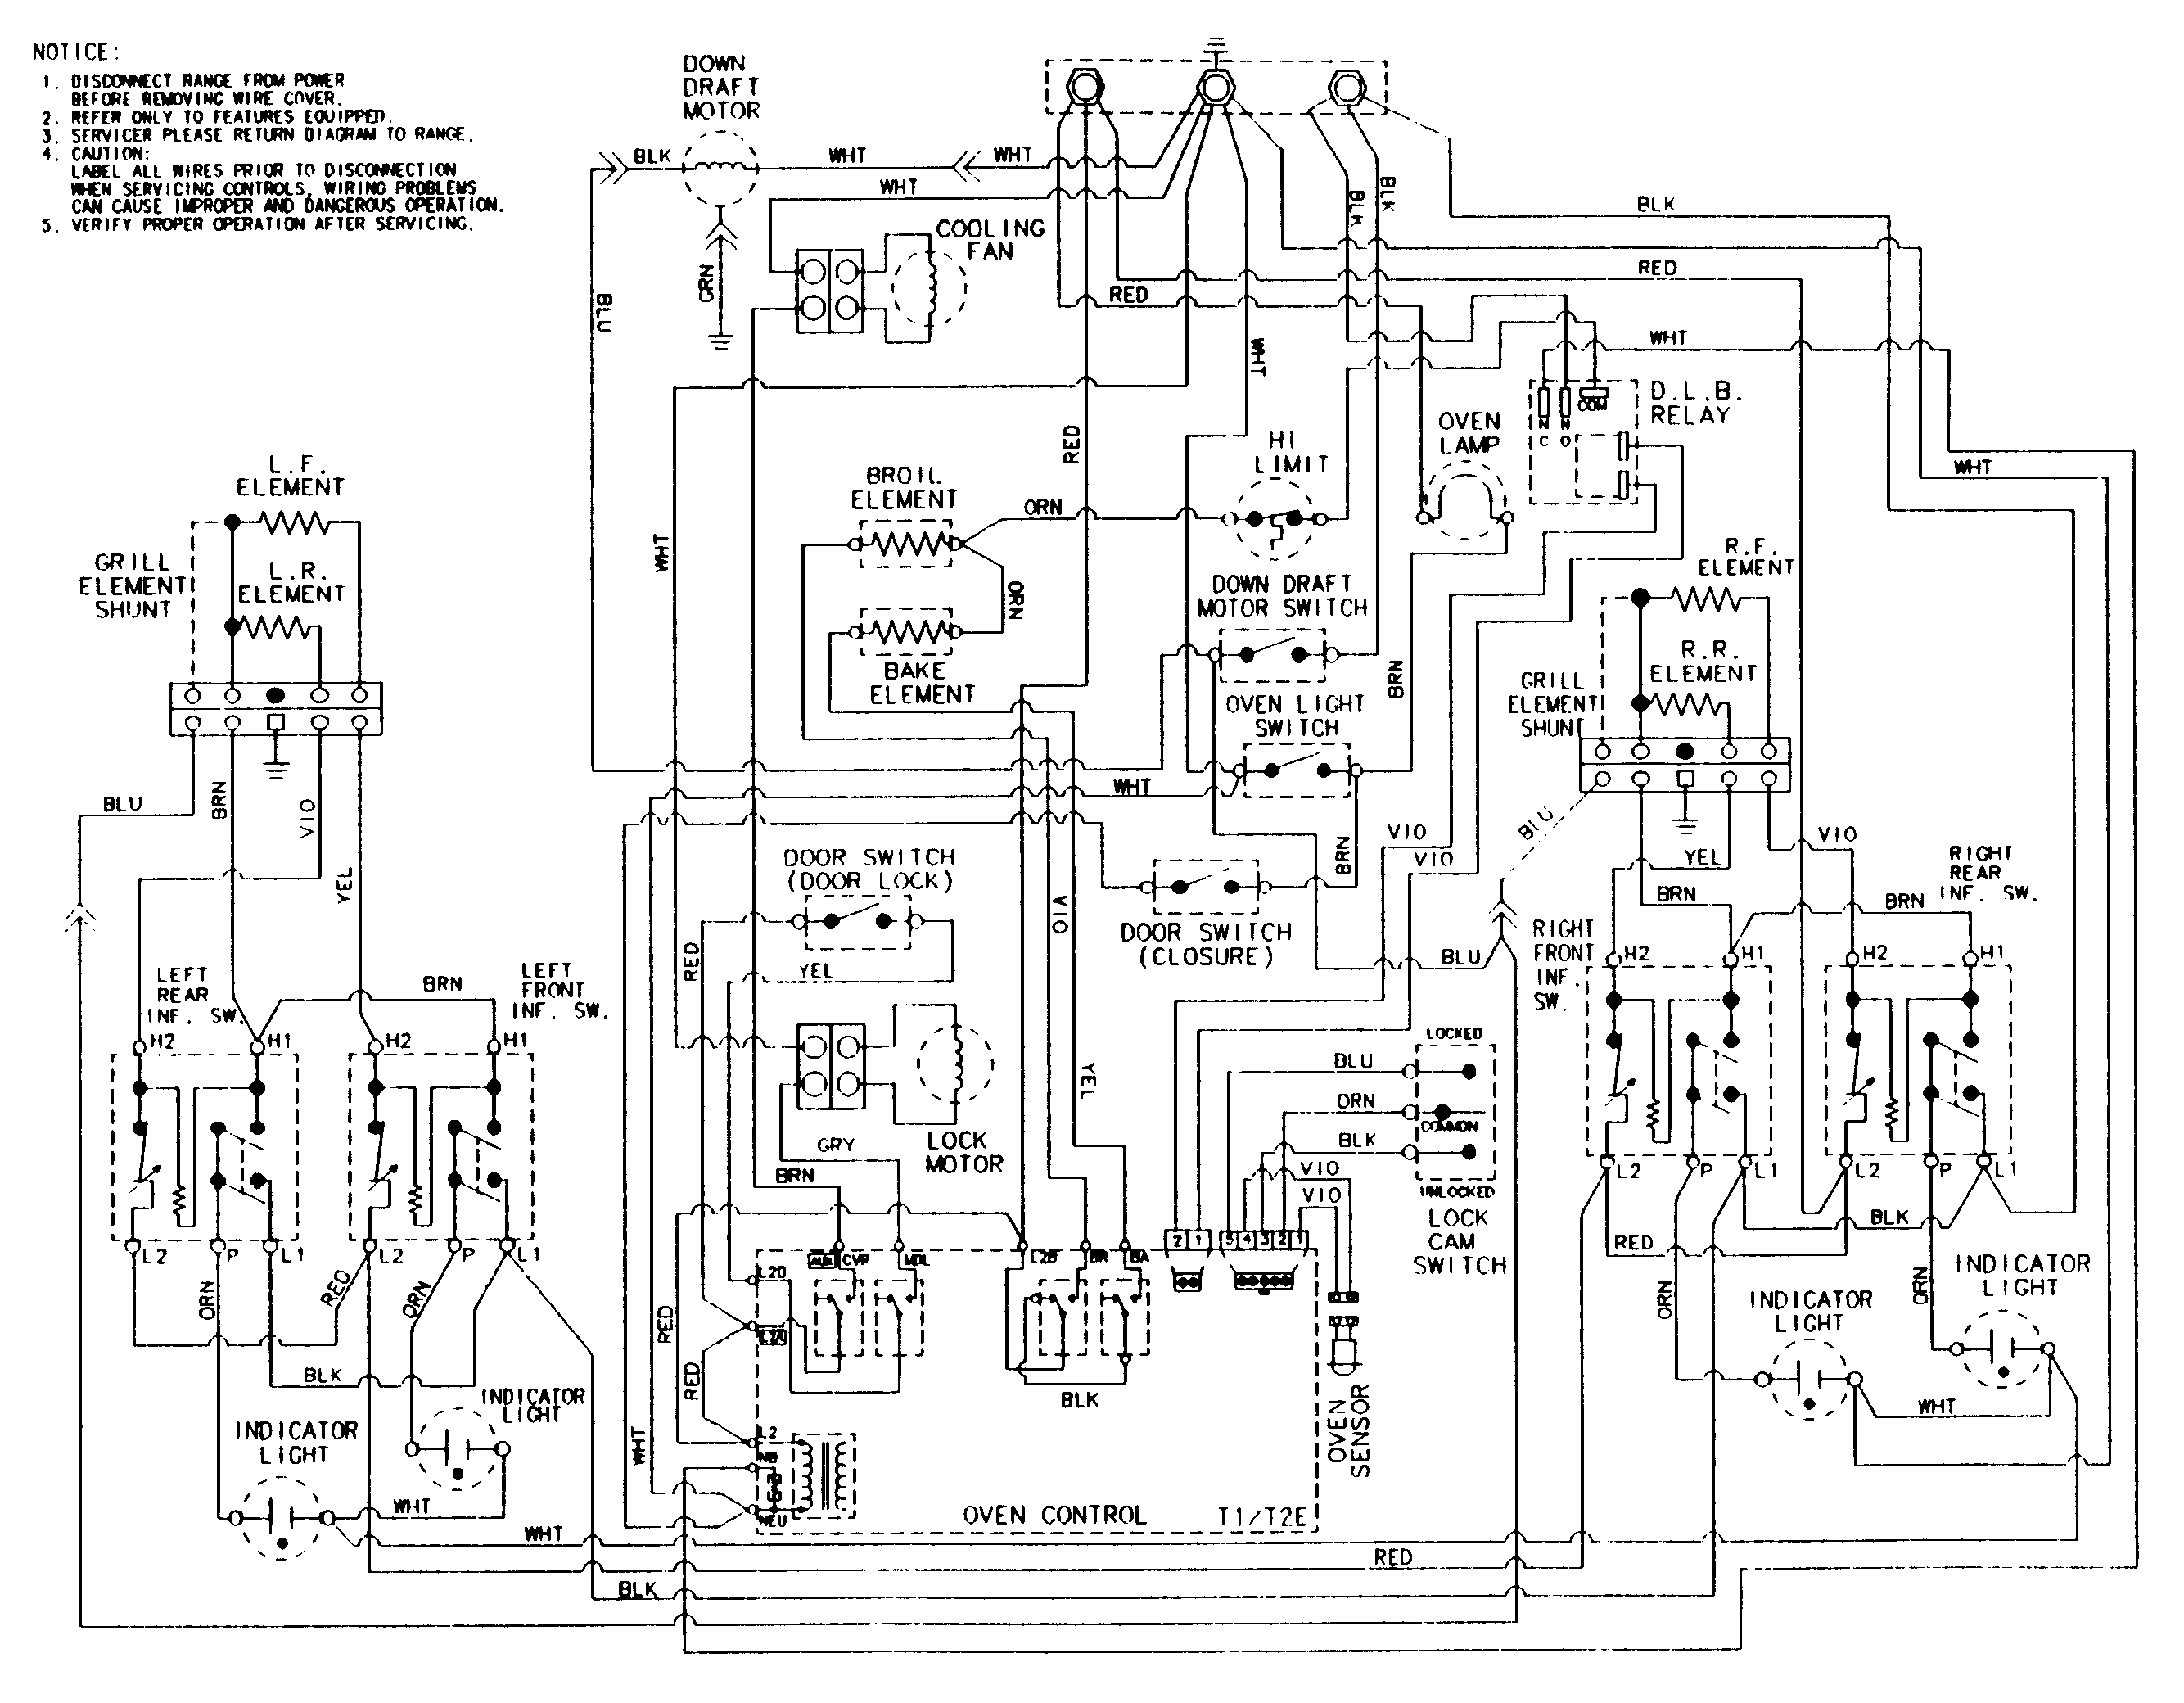 Kawasaki Vn2000 Wiring Diagram together with Defrost Thermostat Wiring Schematic Legend further fortmaker Furnace Thermostat Diagram in addition Wiring A Receptacle With Lights Wiring Diagrams besides 86 Online Diagraming Photo Inspirations. on house wiring diagrams